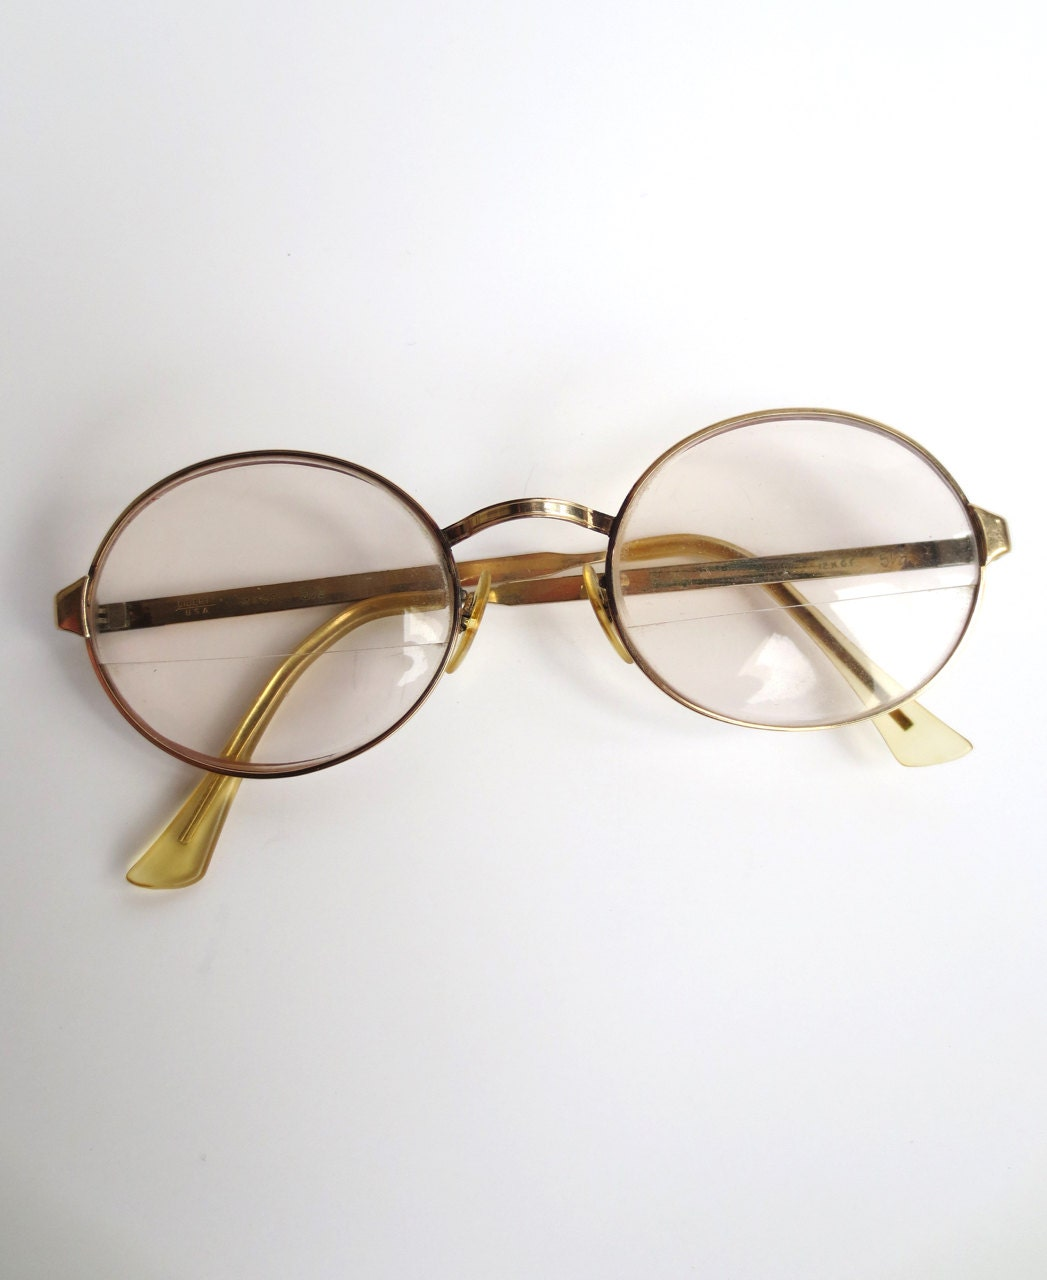 Gold Wire Frame Glasses : groovy 60s spectacles gold wire frame glasses 12K GF eye